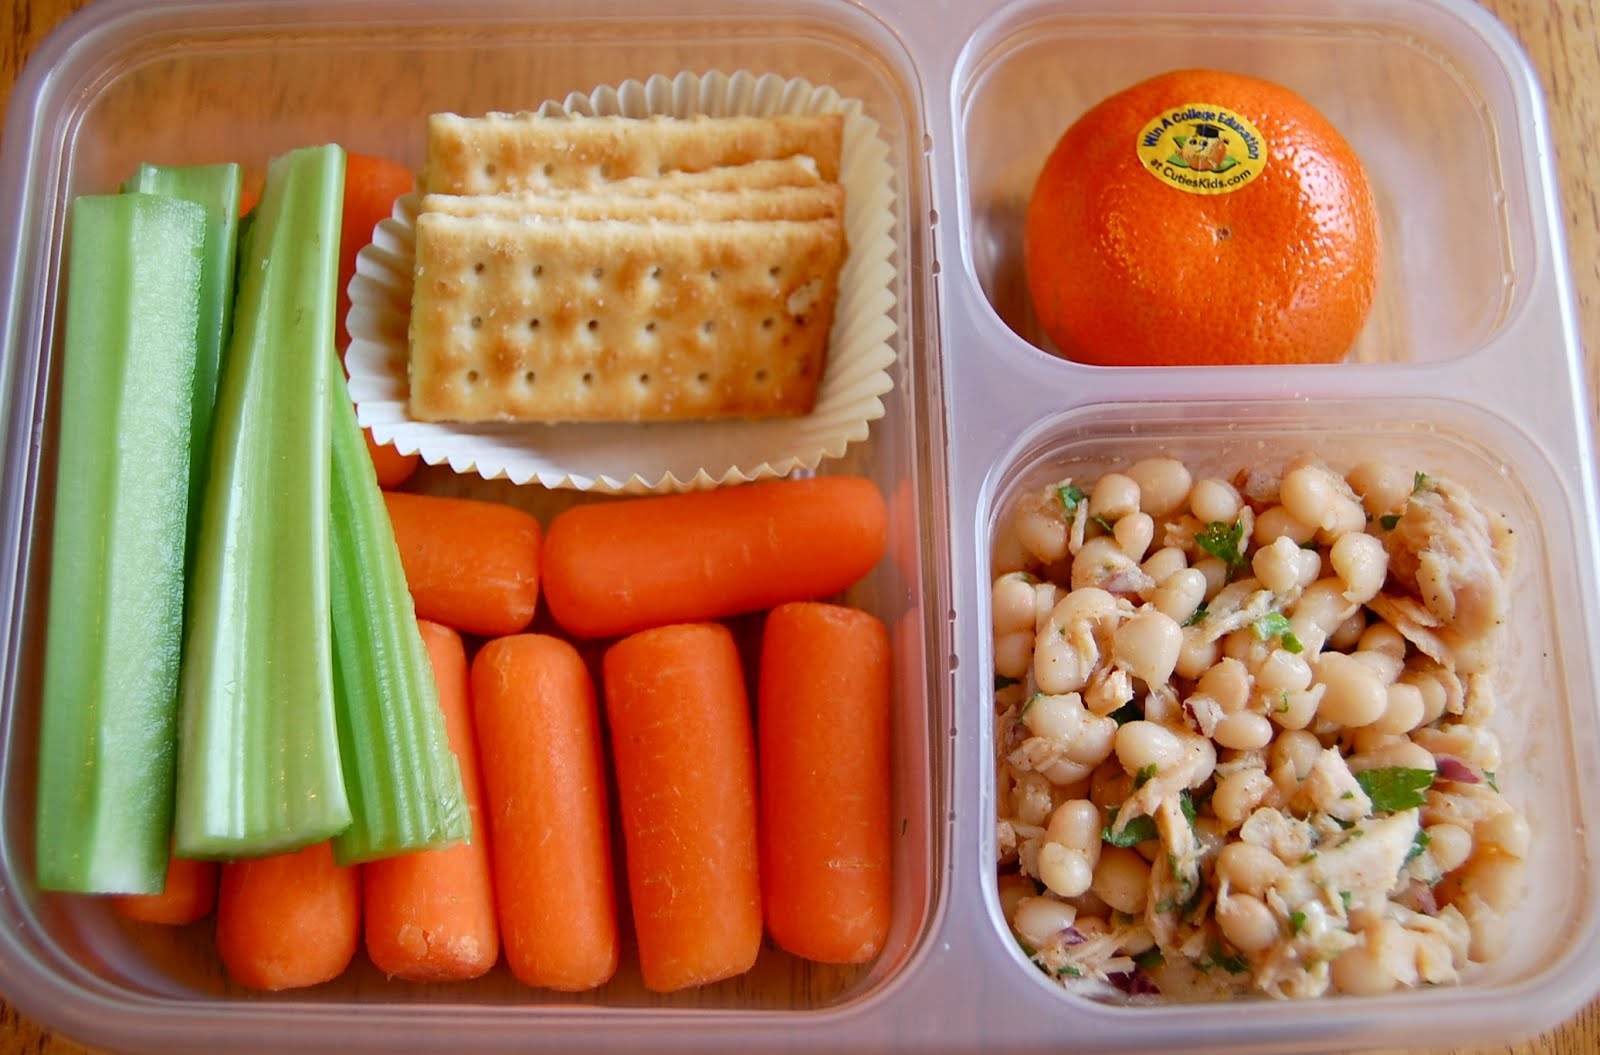 Chef mommy mail bag healthy lunch ideas carrots celery crackers white bean tuna salad clementine forumfinder Choice Image